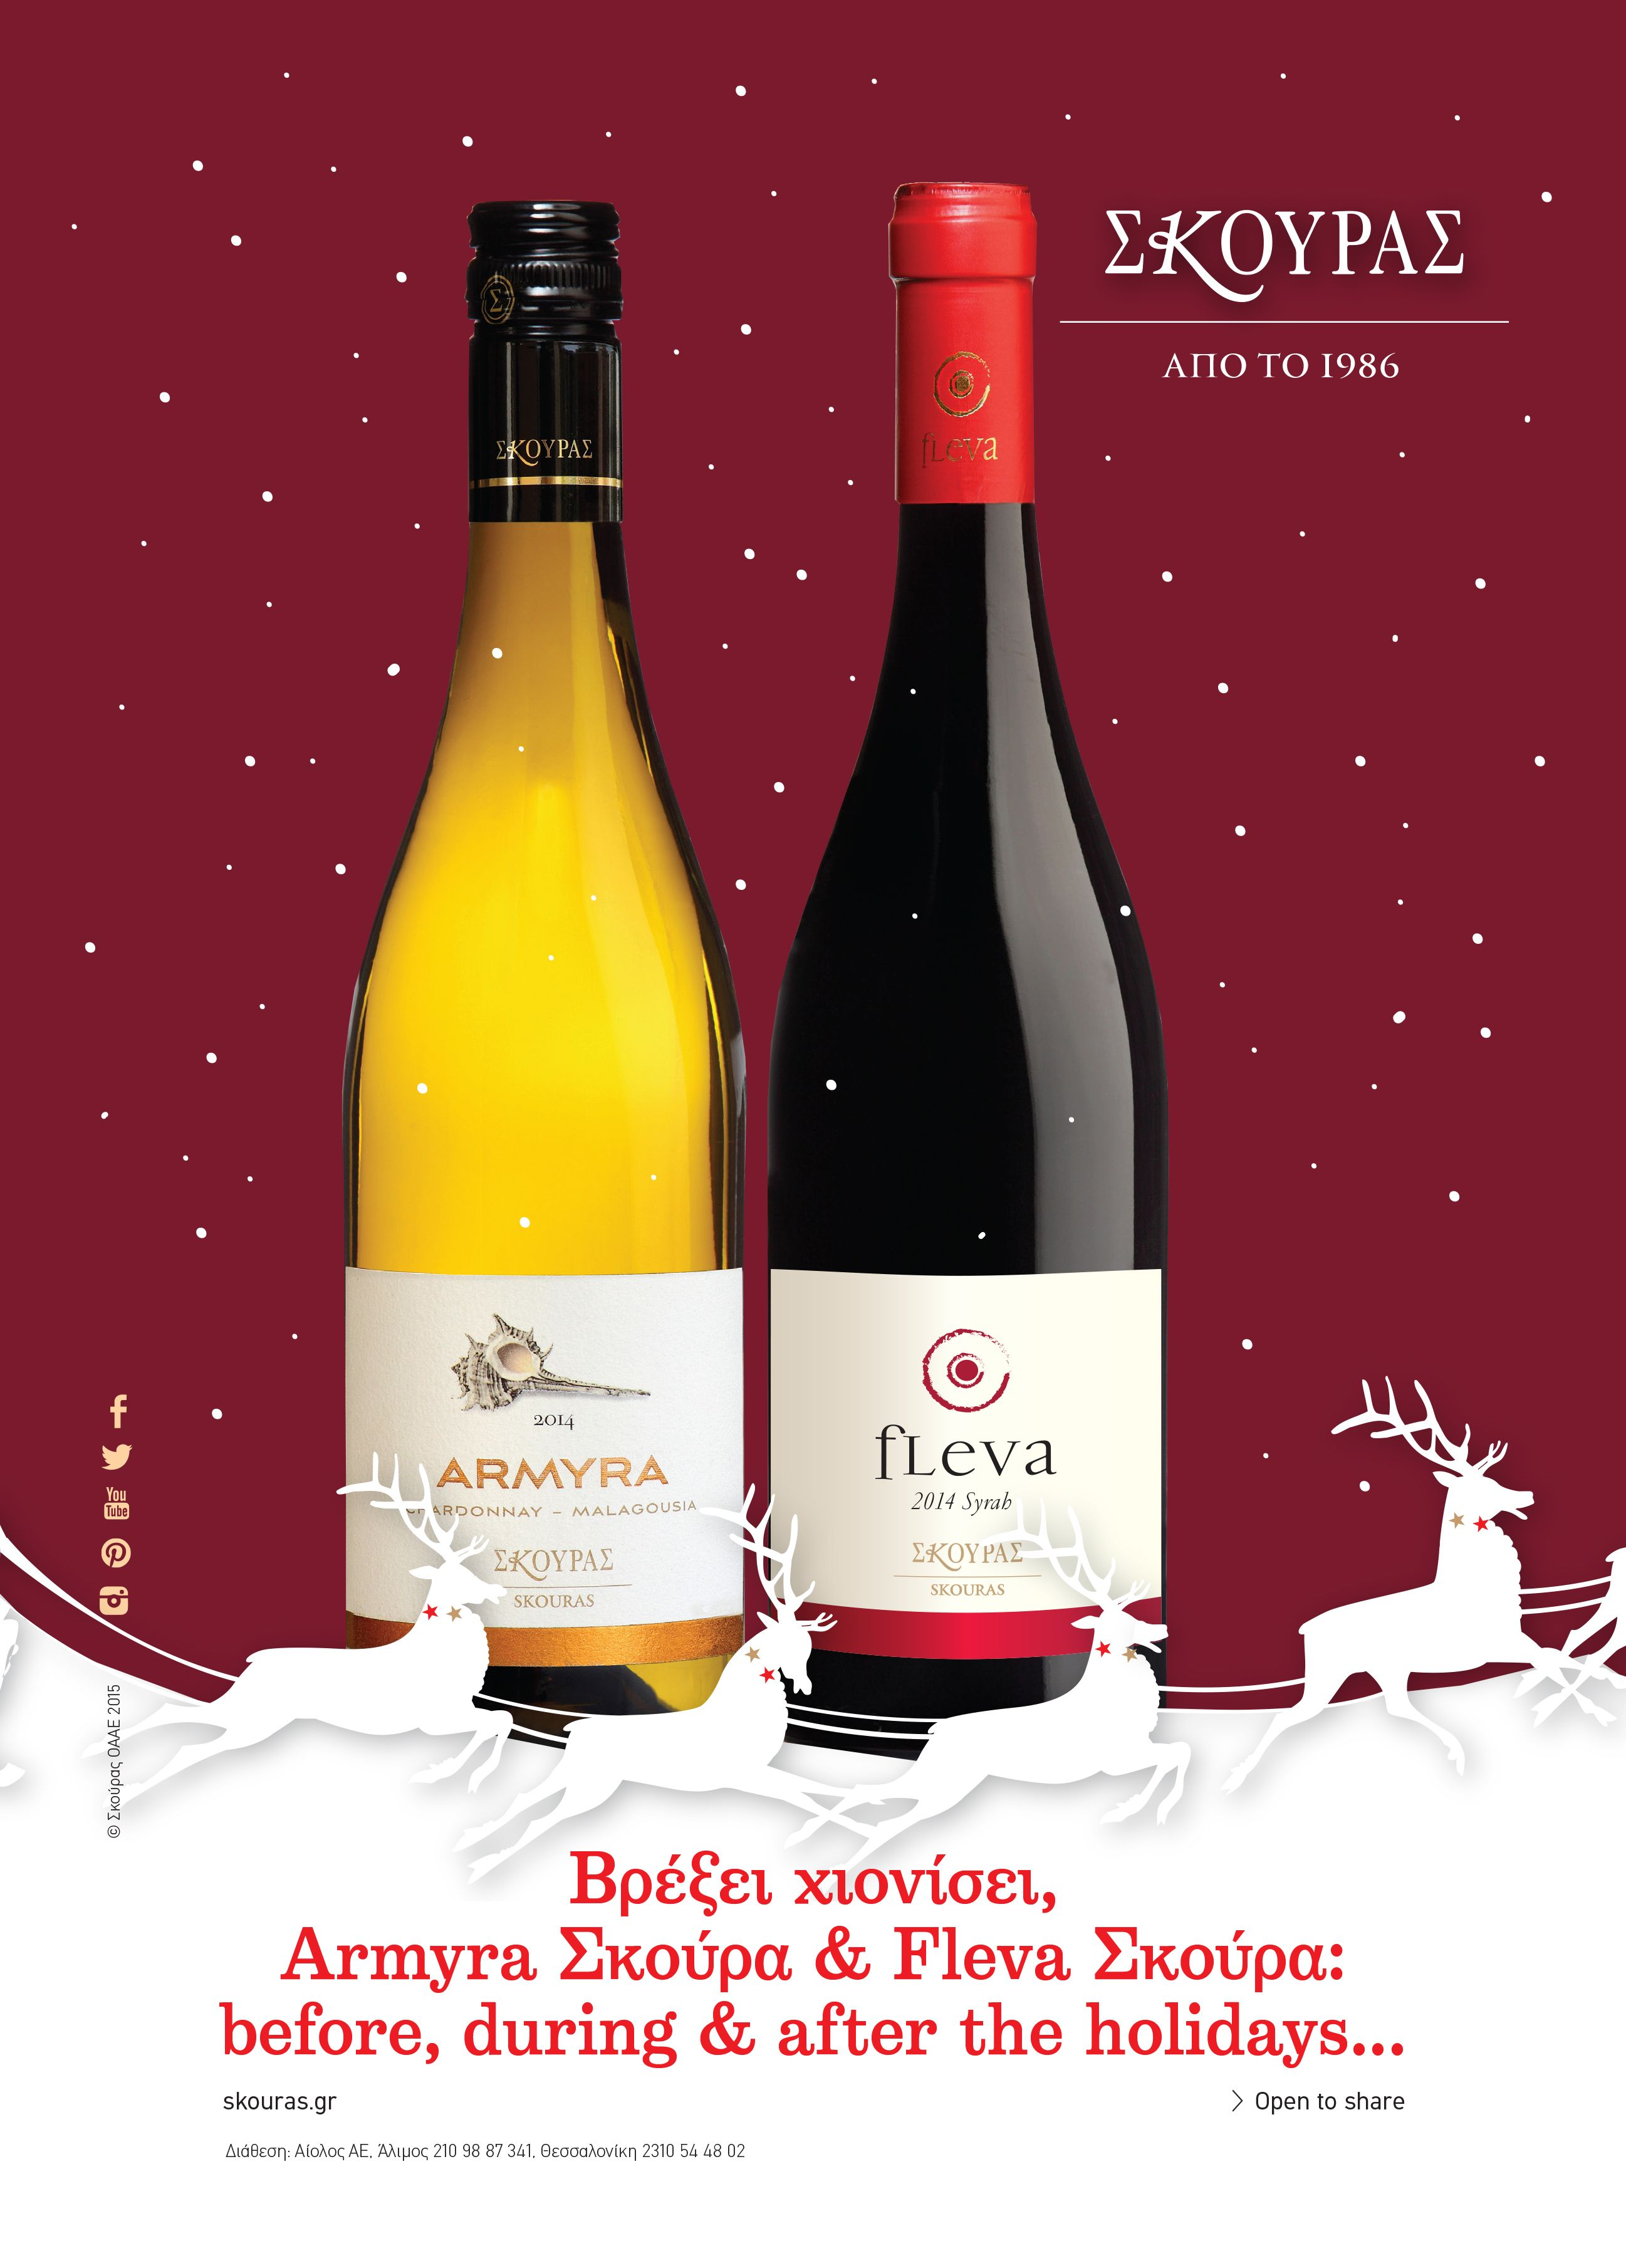 Before During And After The Holidays Merry Christmas Happy New Year Chardonnay Syrah Skouras Drinkgreekwine Greekwines